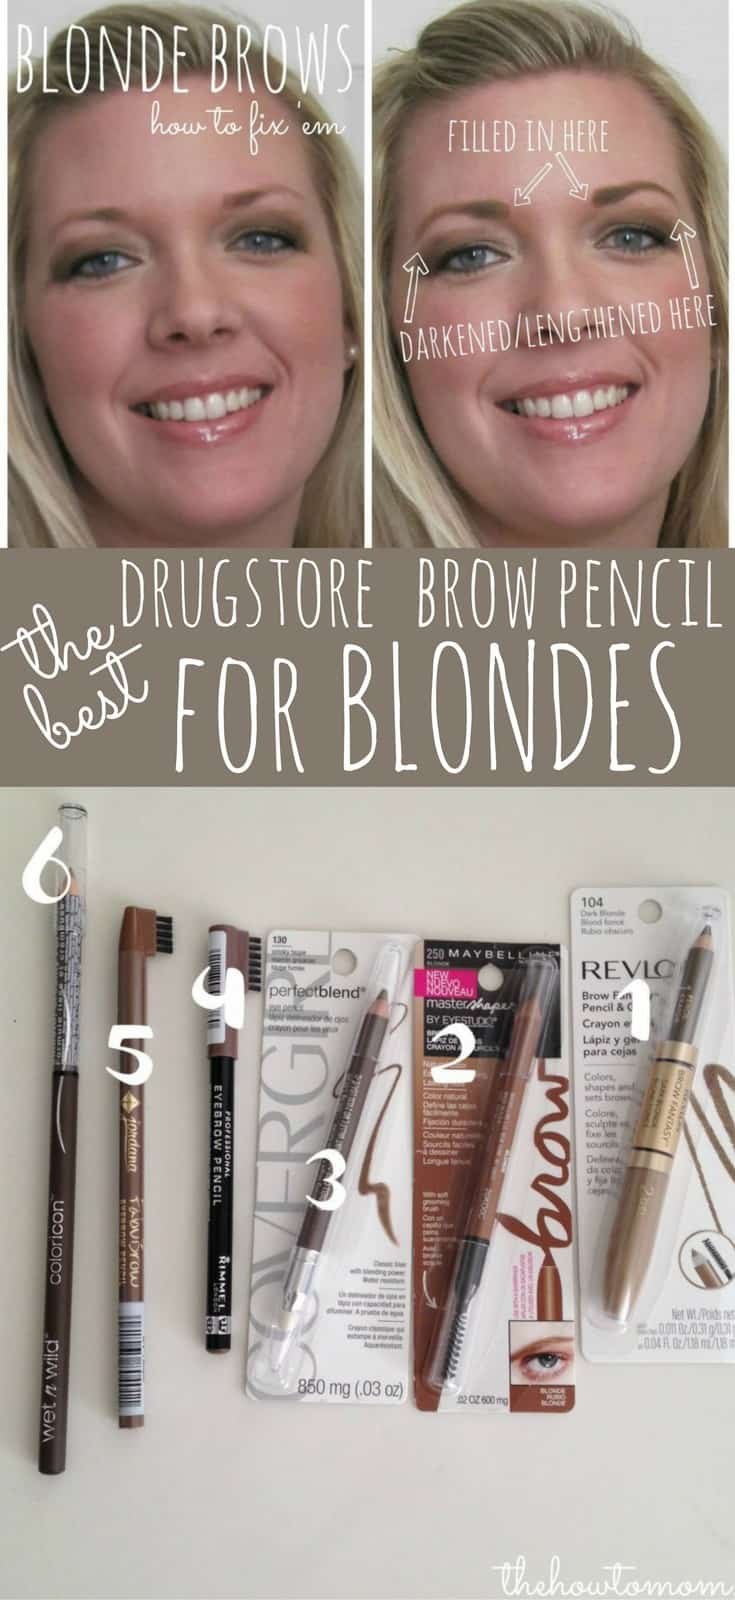 The Best Drugstore Brow Pencil for Blondes - comparison and review of 6 under $10